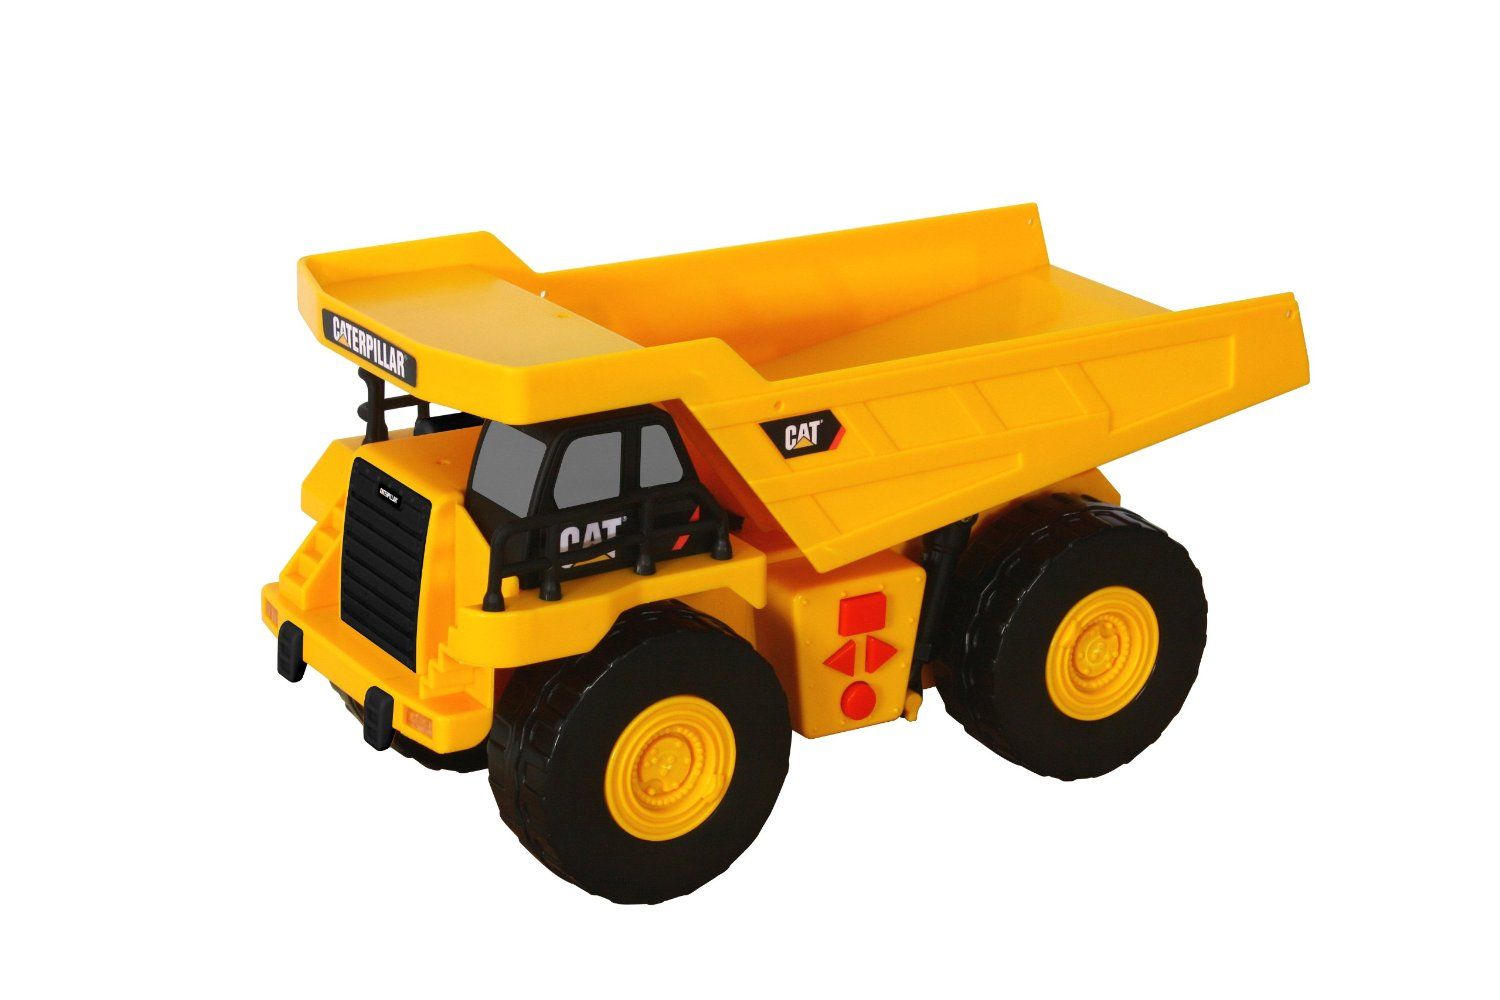 All baby girl wants is a cat big builder dump truck theitbaby